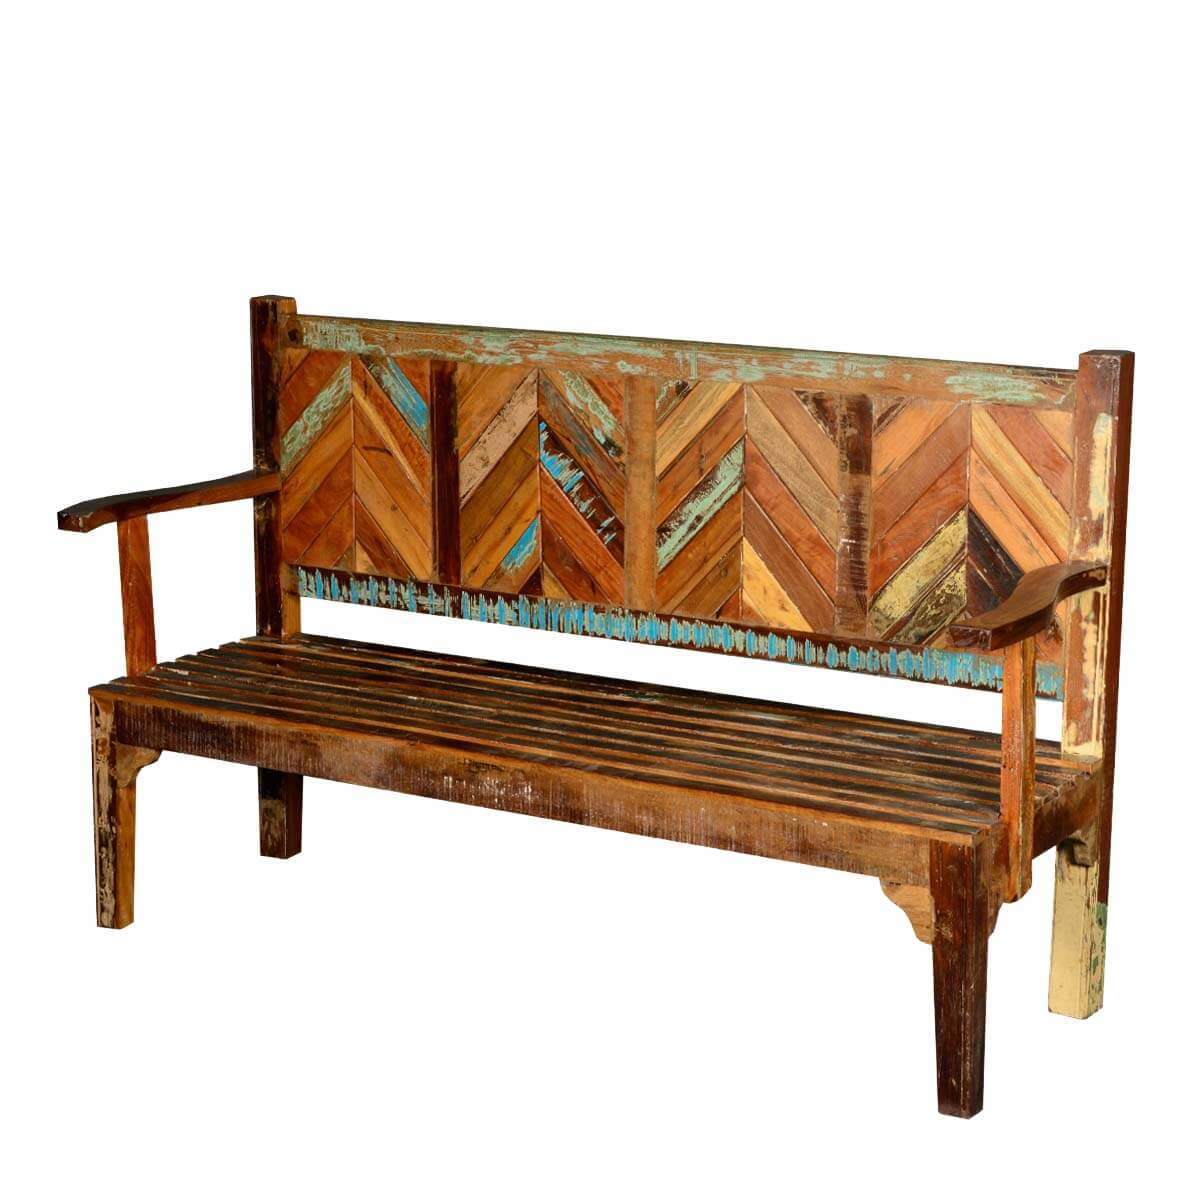 #B04F11  Benches And Sofas Rustic Reclaimed Wood Parquet High Back Porch Wooden with 1200x1200 px of Highly Rated High Back Wooden Bench 12001200 picture/photo @ avoidforclosure.info